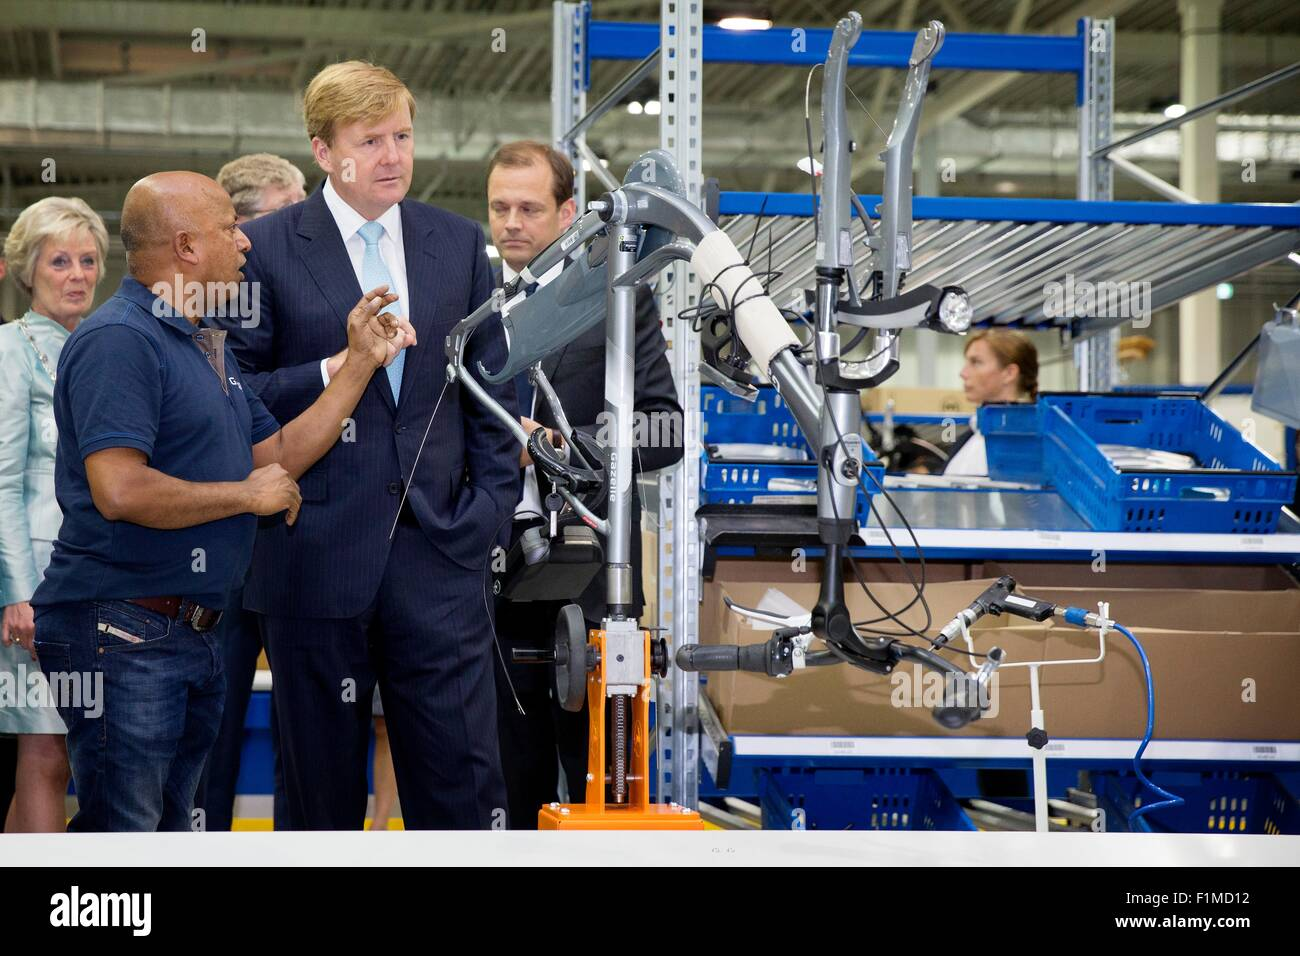 Dieren, The Netherlands. 3rd Sep, 2015. King Willem-Alexander of The Netherlands opens the new factory of bicycle - Stock Image